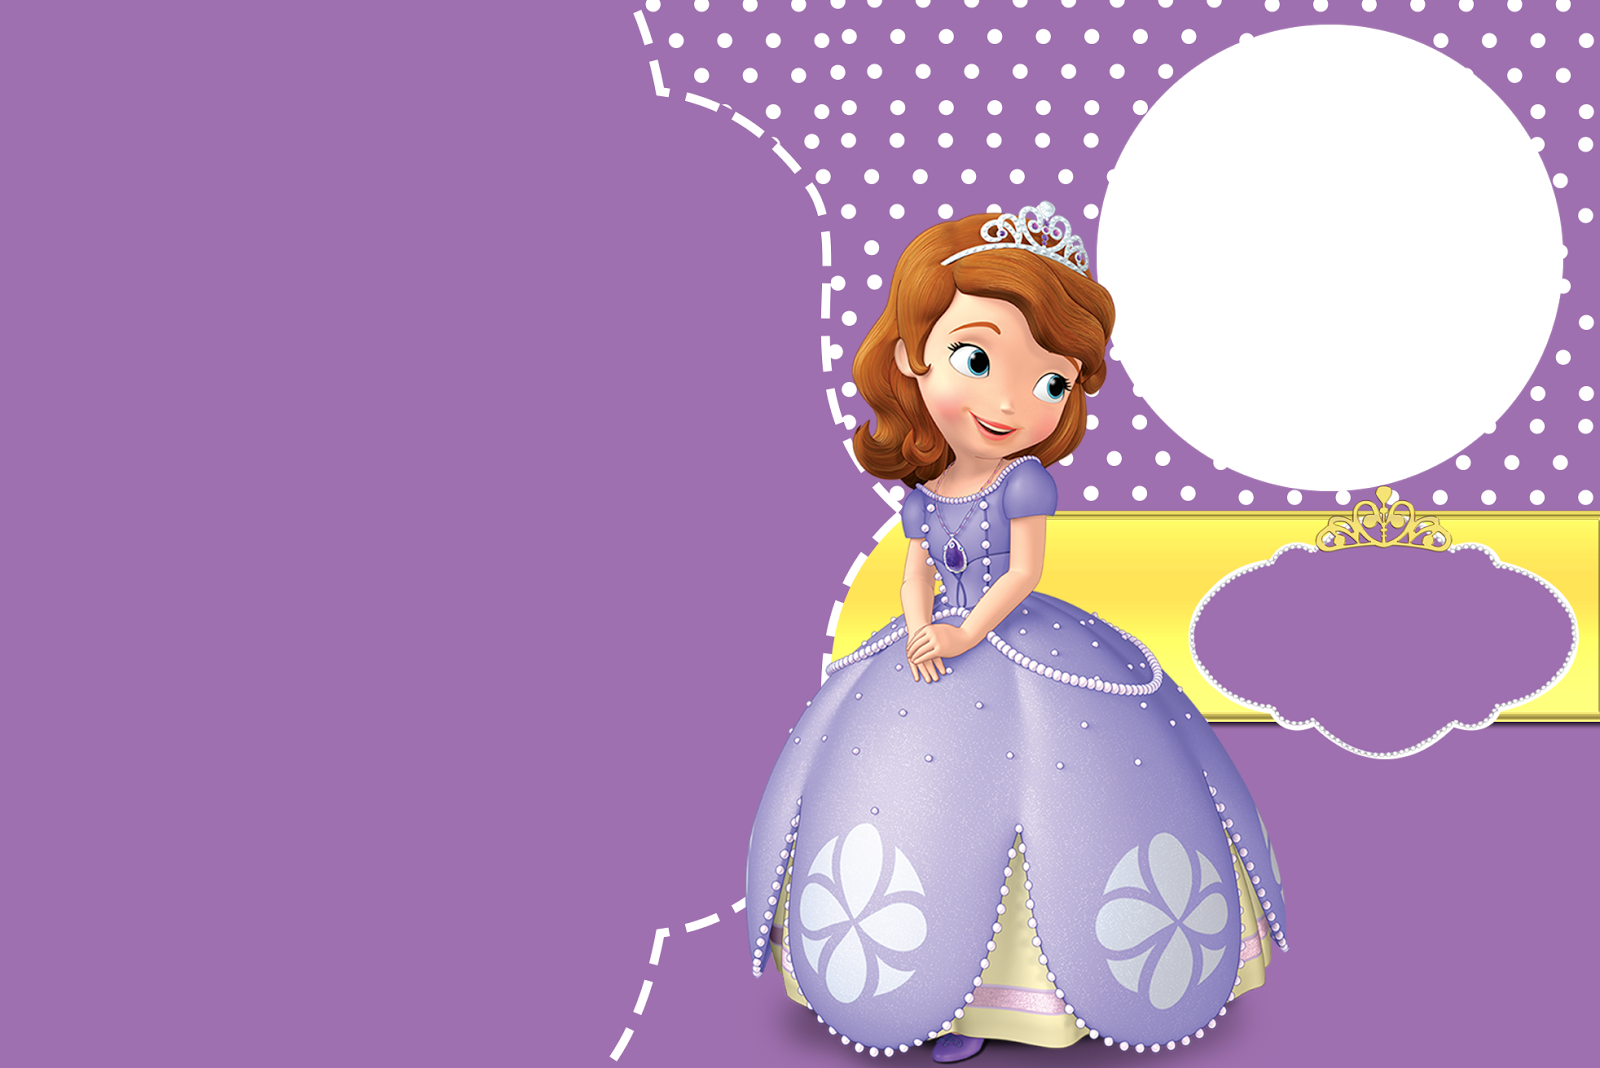 23 Editable Invitation Template Sofia The First Photo Invitation Templates Fr Princess Sofia Invitations Free Printable Invitations Princess Sofia The First